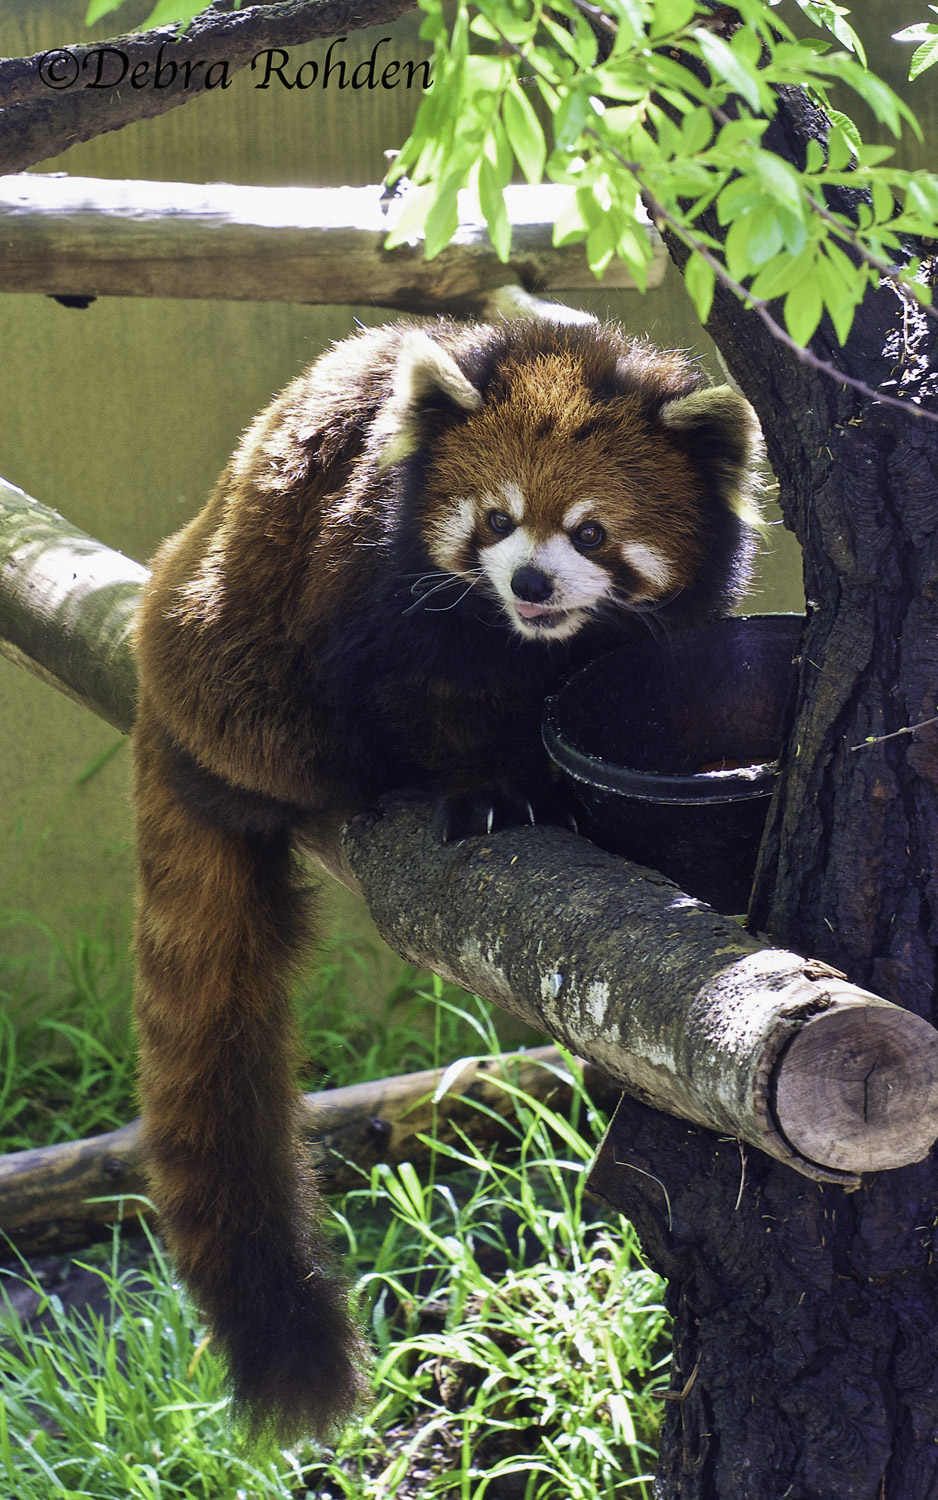 A Red Panda!  Did not know such an animal existed.